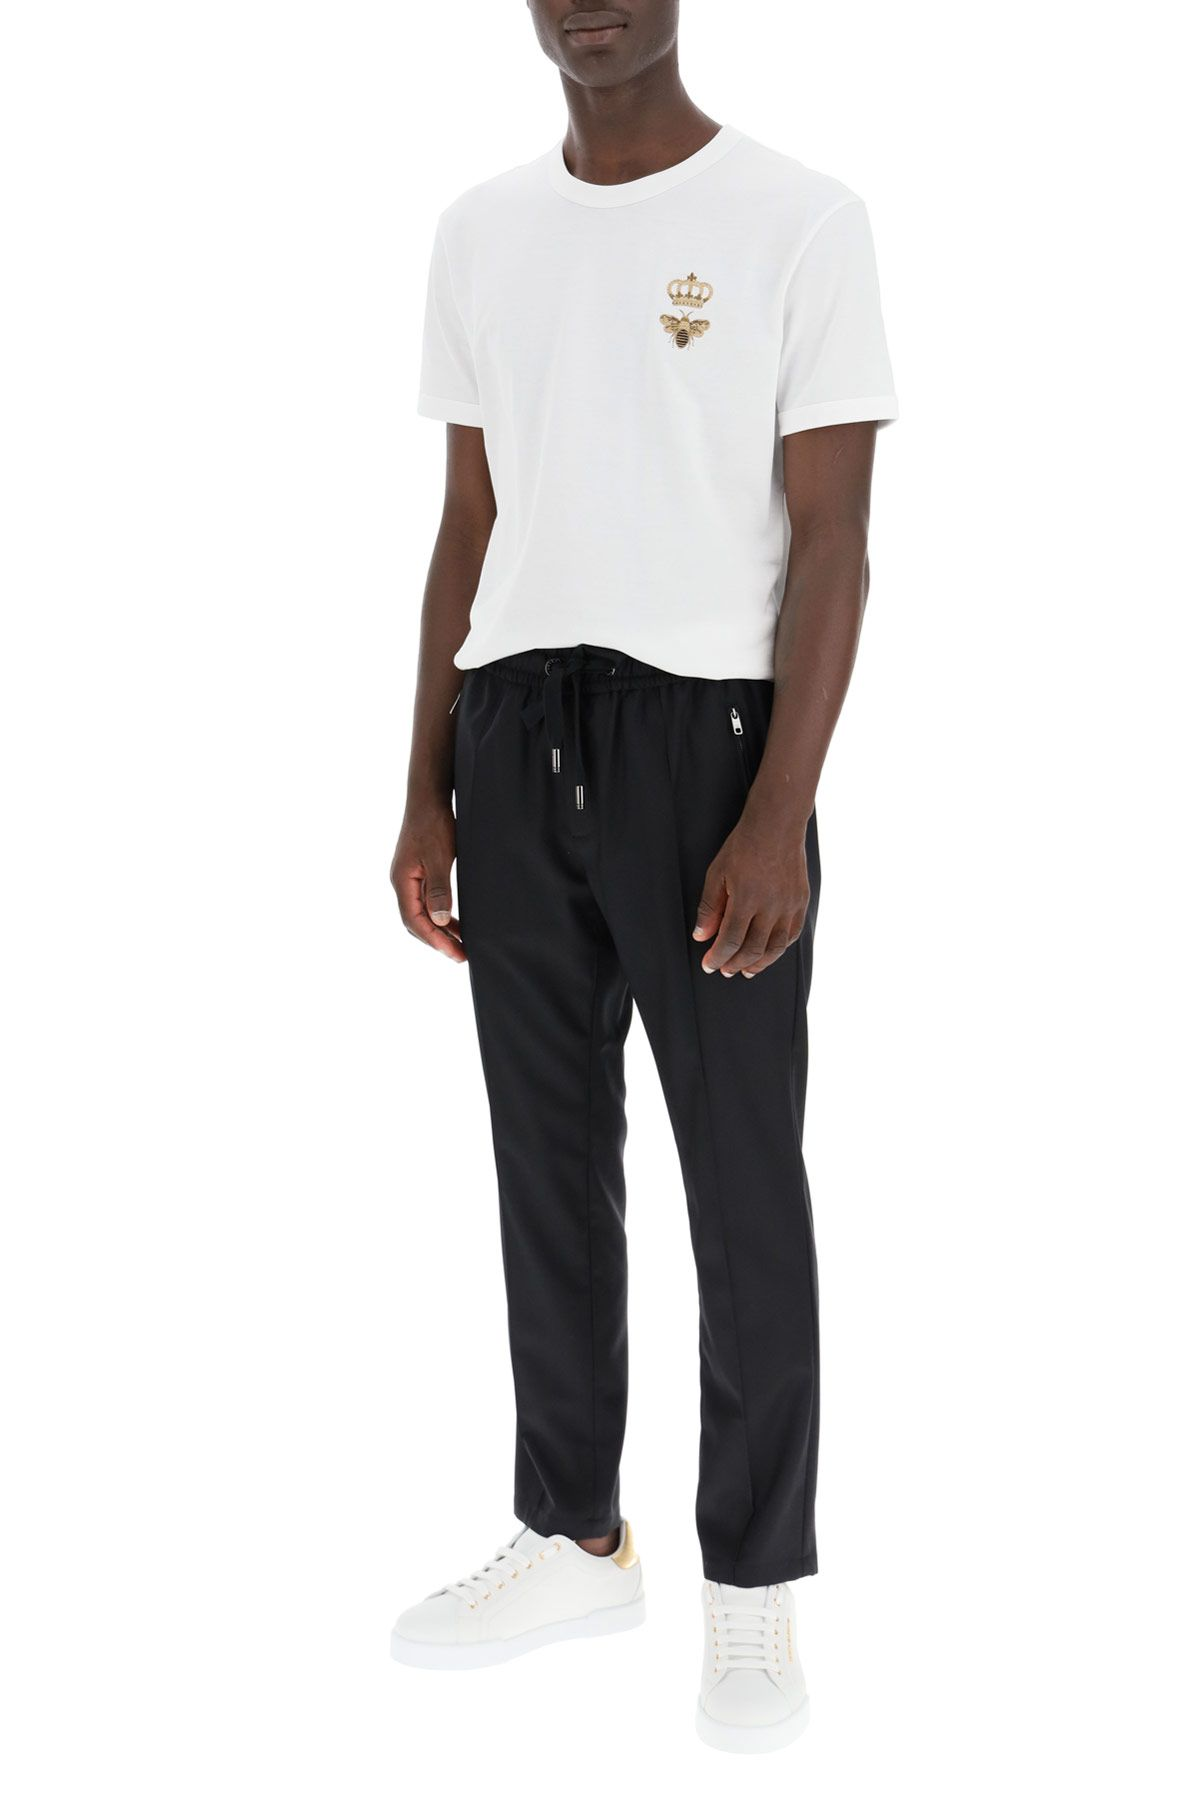 dolce & gabbana clothing men bee and crown t-shirt